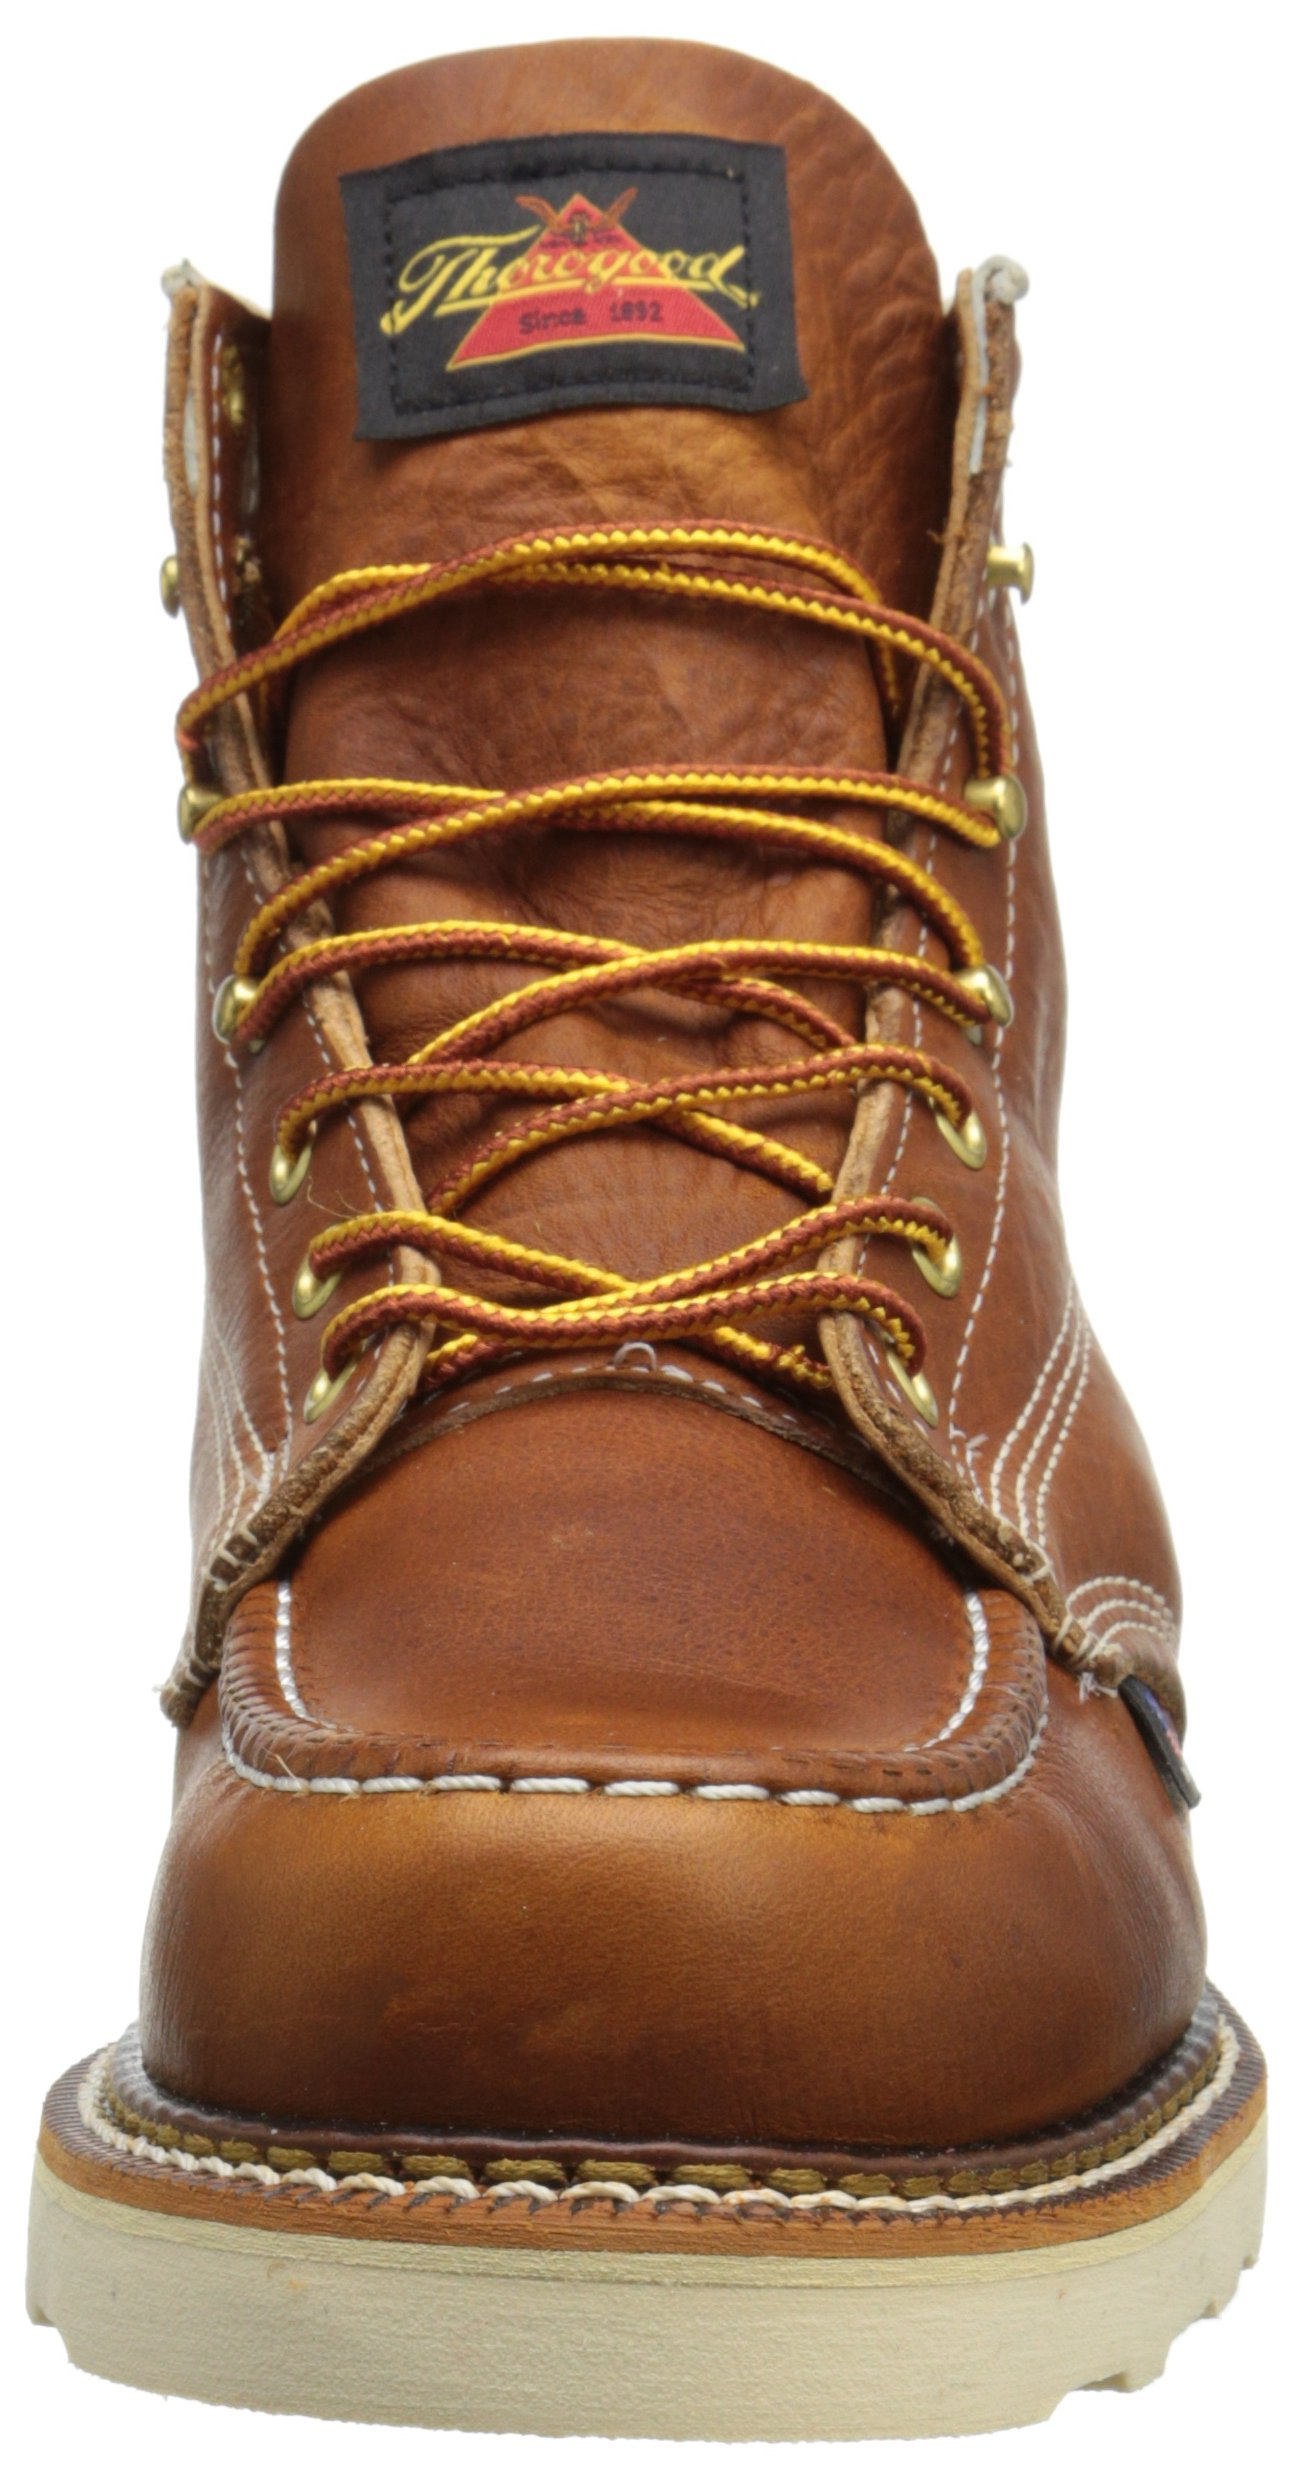 Thorogood-American-Heritage-Men-039-s-6-034-Moc-Toe-Max-Wedge-Non-Safety-Boots thumbnail 20